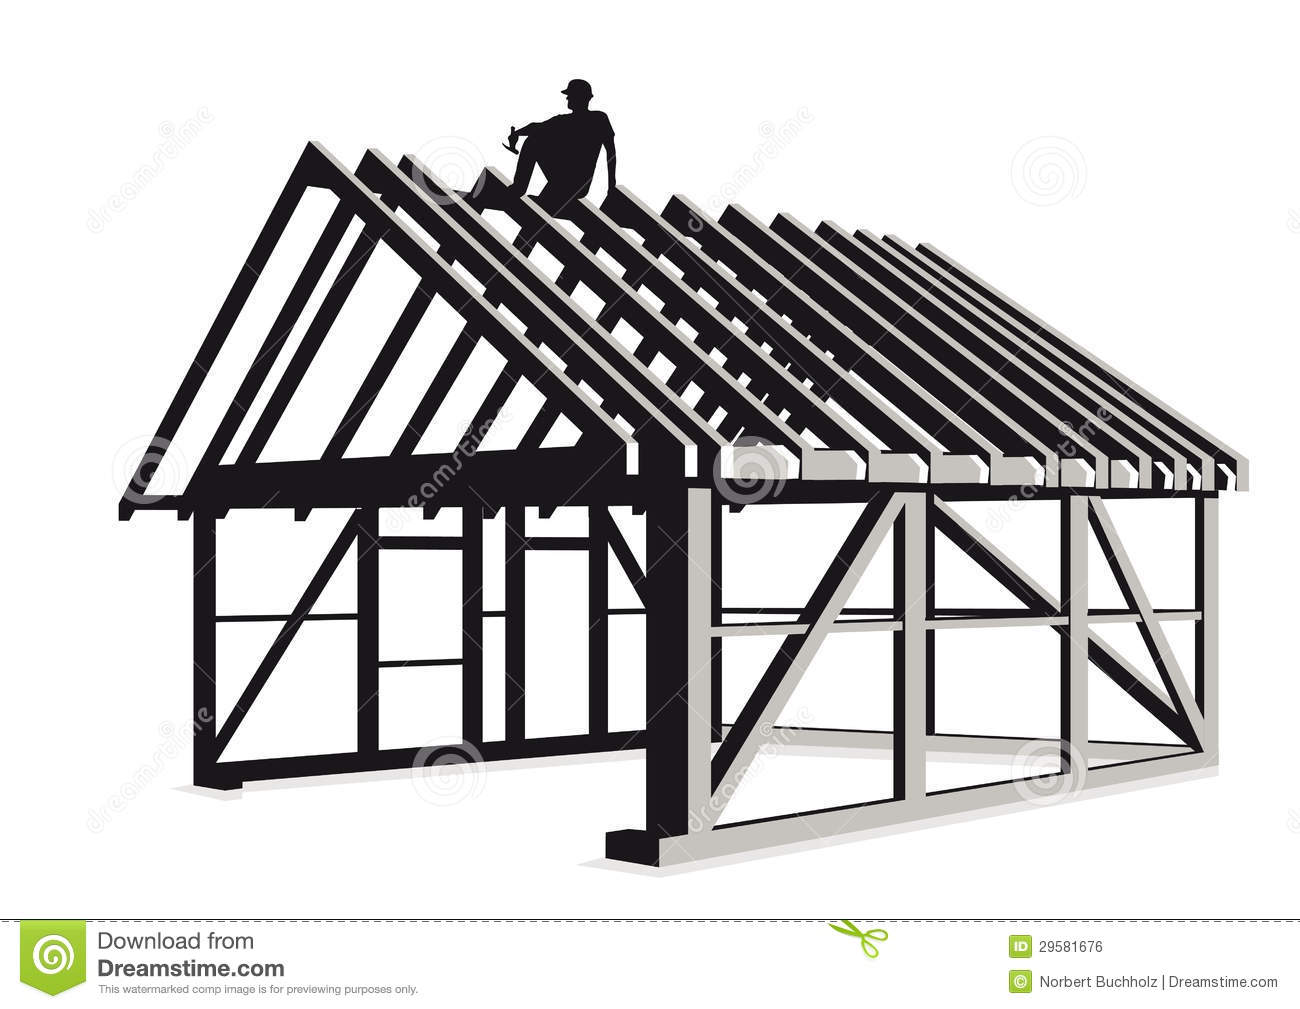 Building Construction Graphics : Constructing wood framed house royalty free stock image